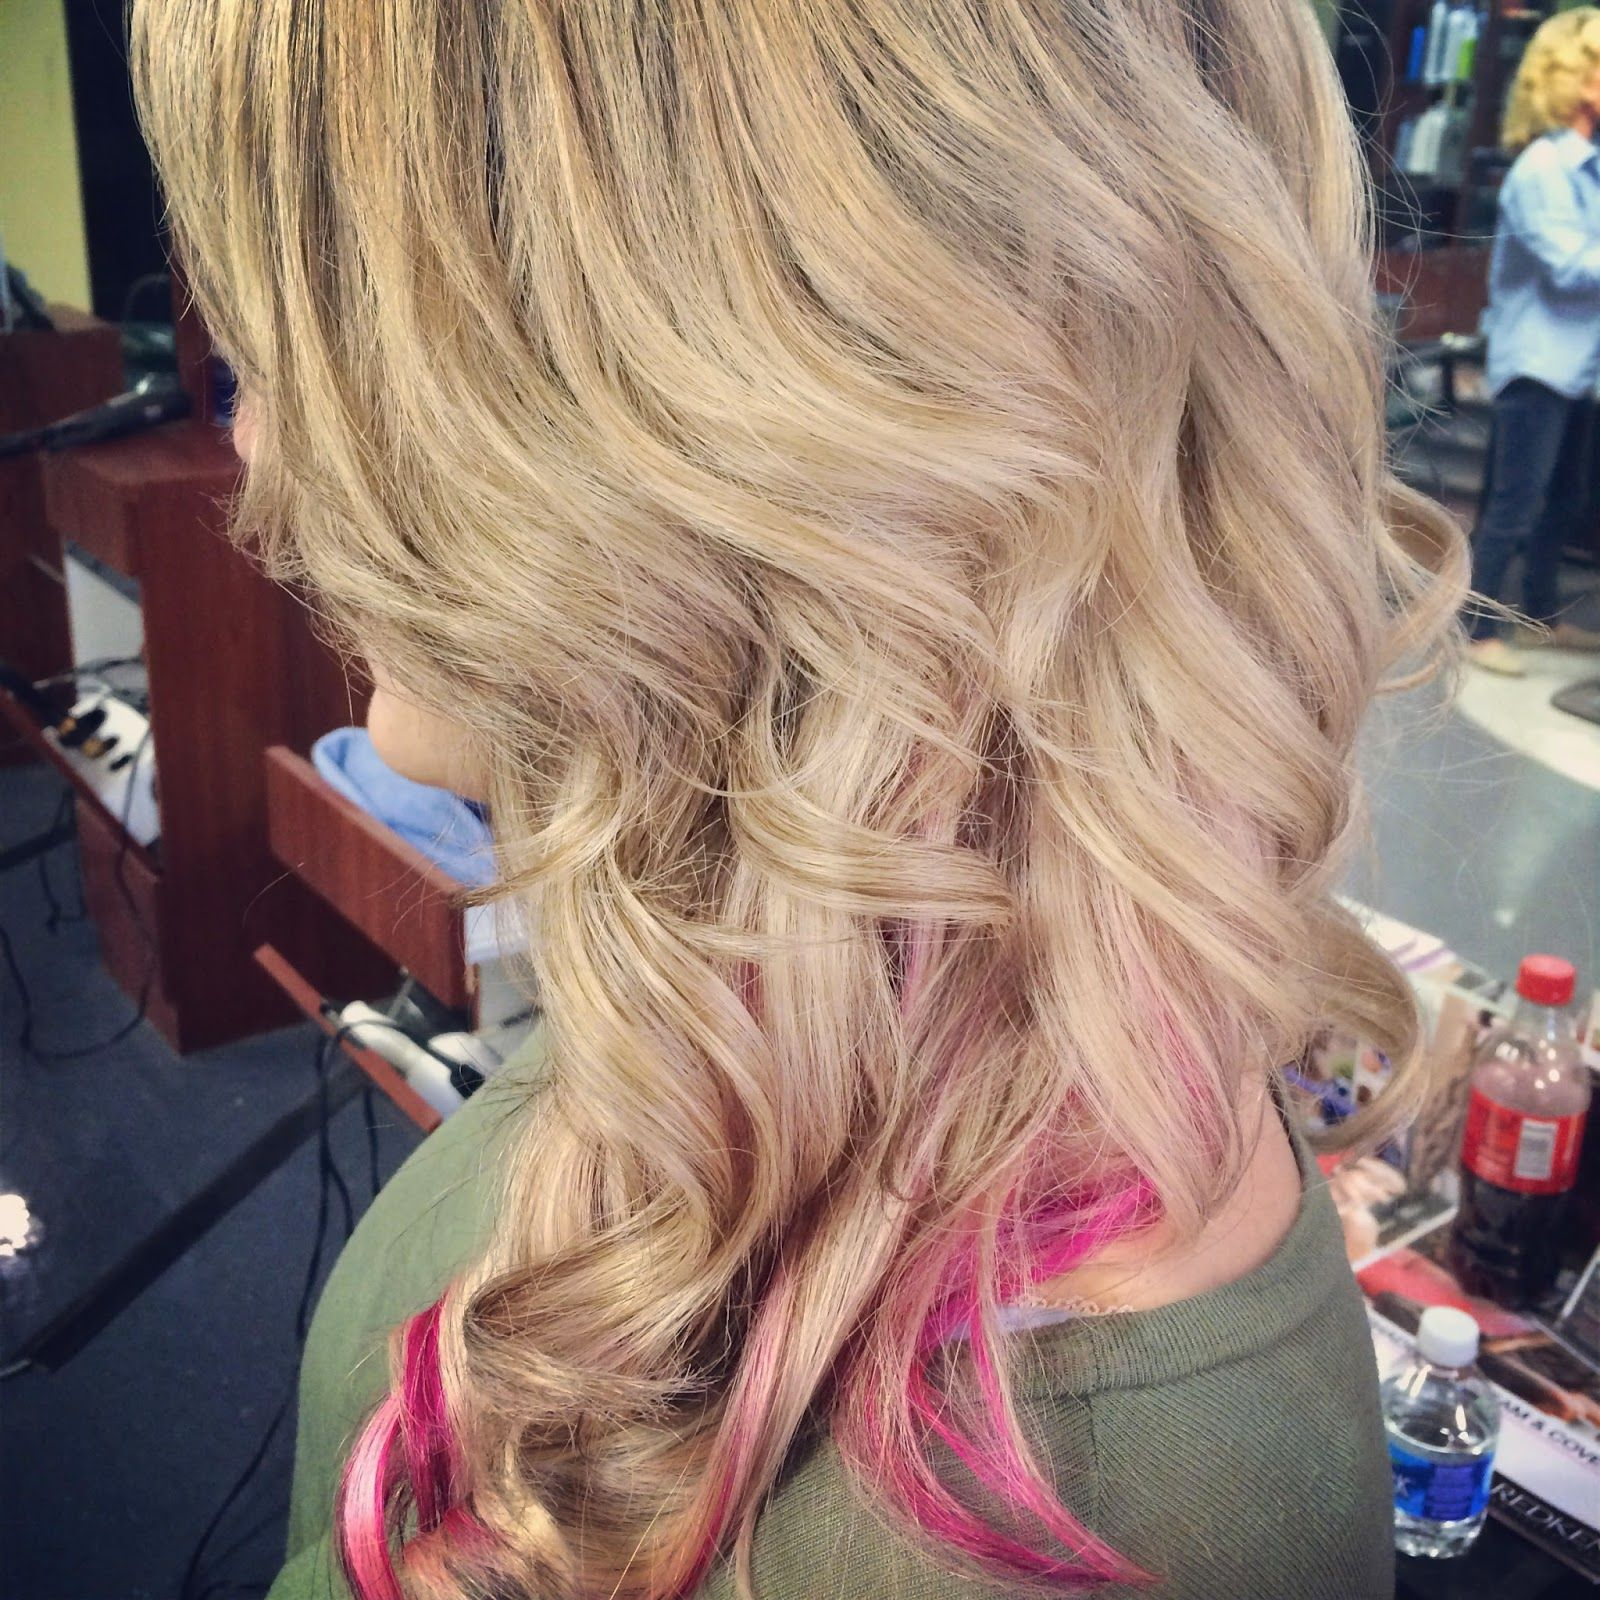 Add A Little Sass With Pink Peek A Boo Highlights In Your Blonde